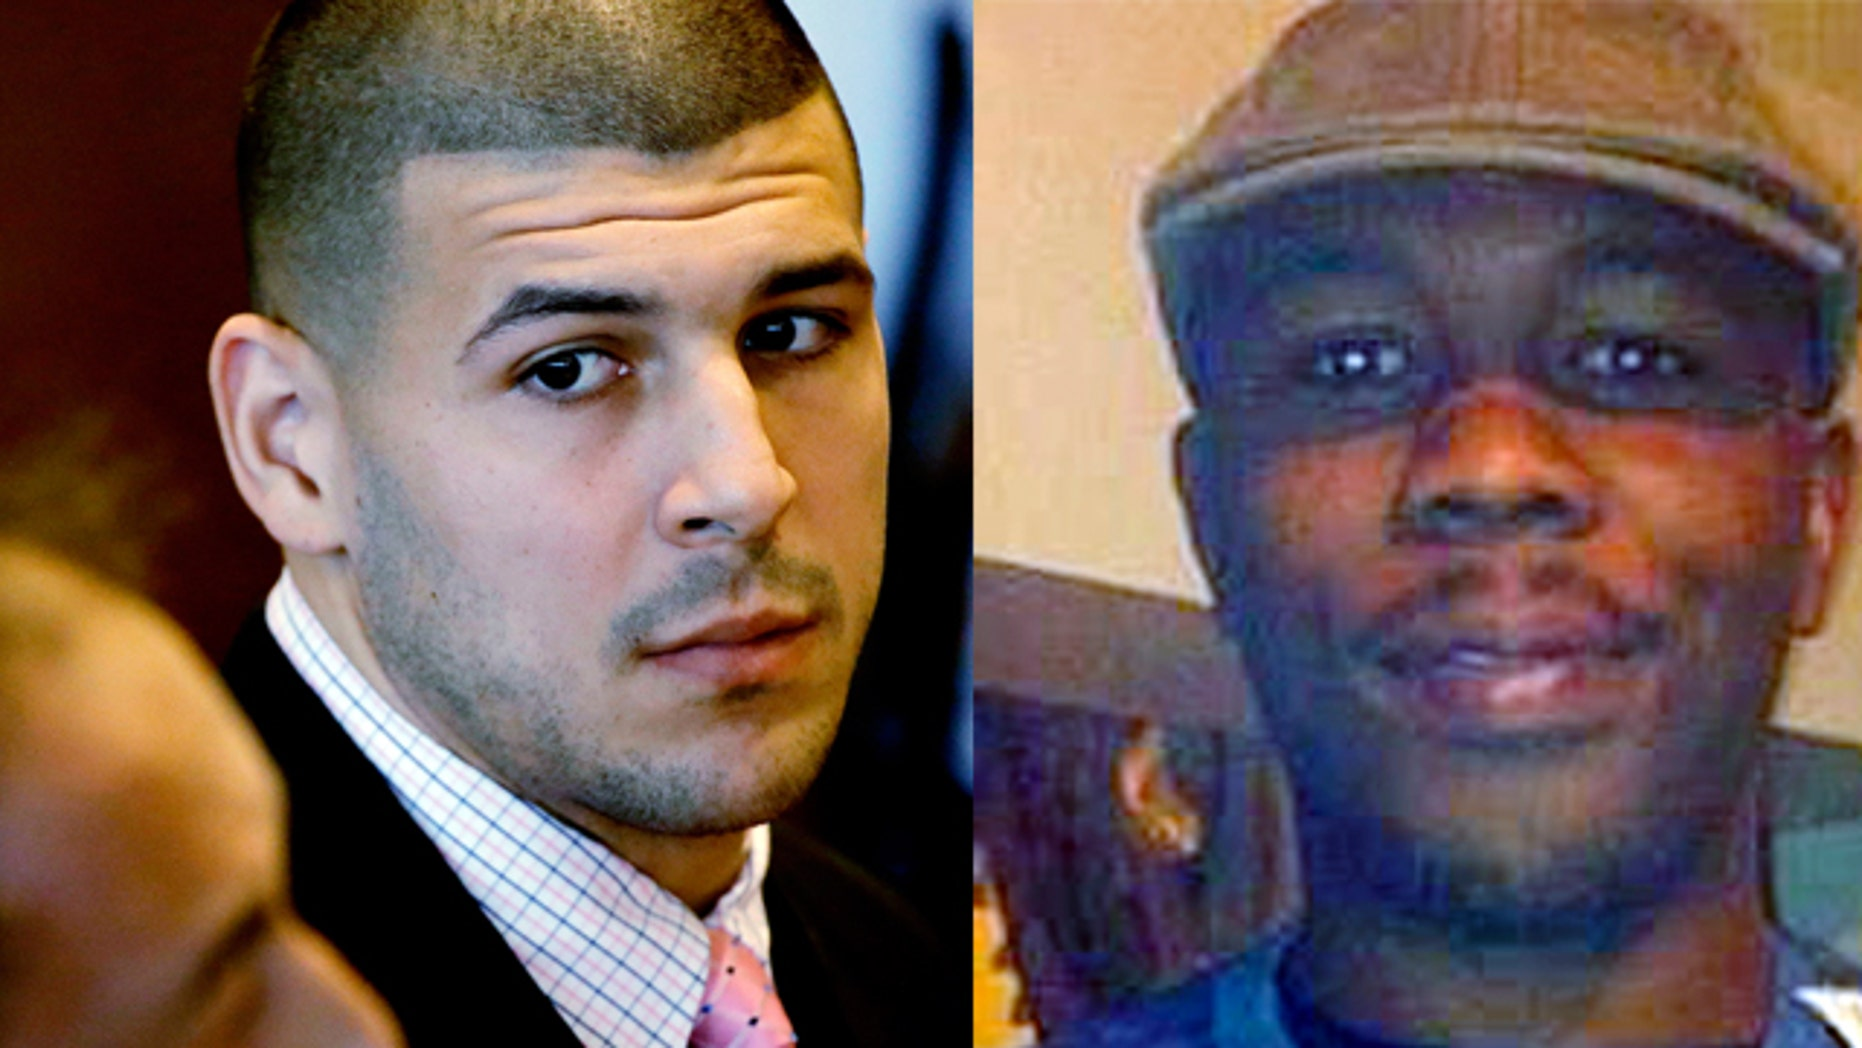 Aaron Hernandez came under scrutiny in the shooting following his arrest in the slaying of Odin Lloyd, a semi-professional football player whose body was found June 17 near Hernandez's North Attleborough, Mass., home. Hernandez has pleaded not guilty to murder in that case.